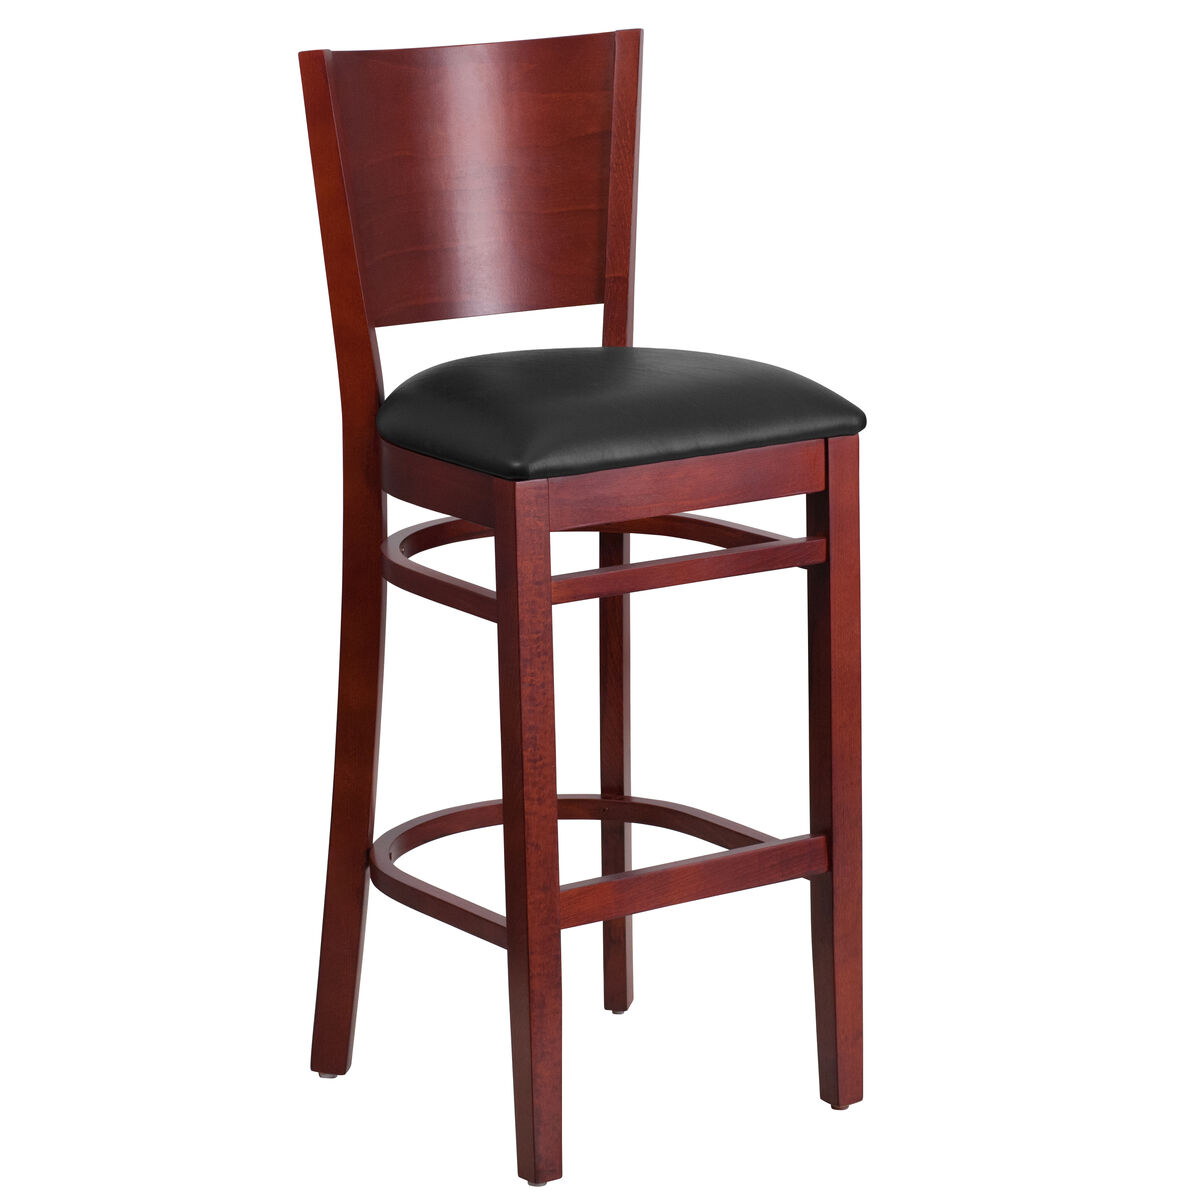 Wood solid back stool bfdh dg w bar